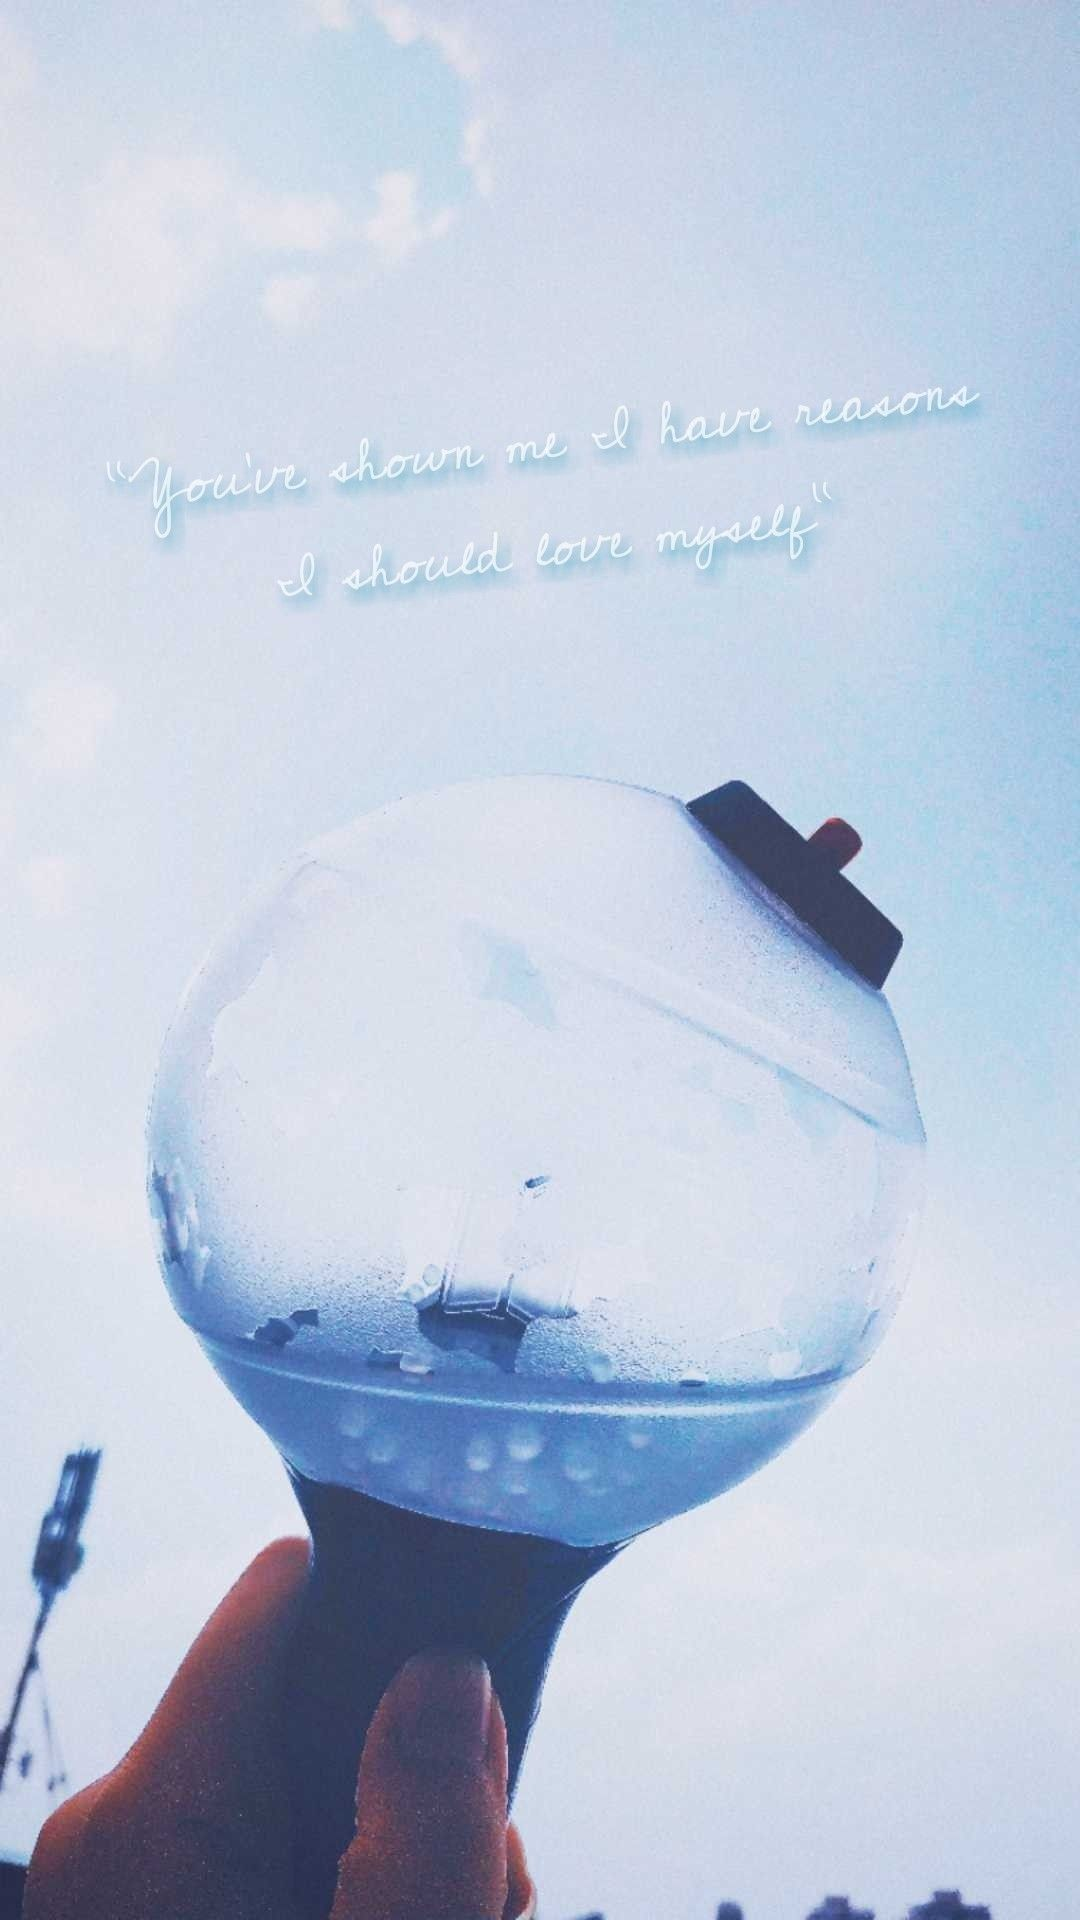 Bts Army Bomb Ver 3 Wallpaper Taken By Me Bts Bangtan Army Bomb Loveyourself Armybomb Wallpapers Edit V Bts Army Bomb Bts Wallpaper Bts Backgrounds Aesthetic bts army bomb wallpaper